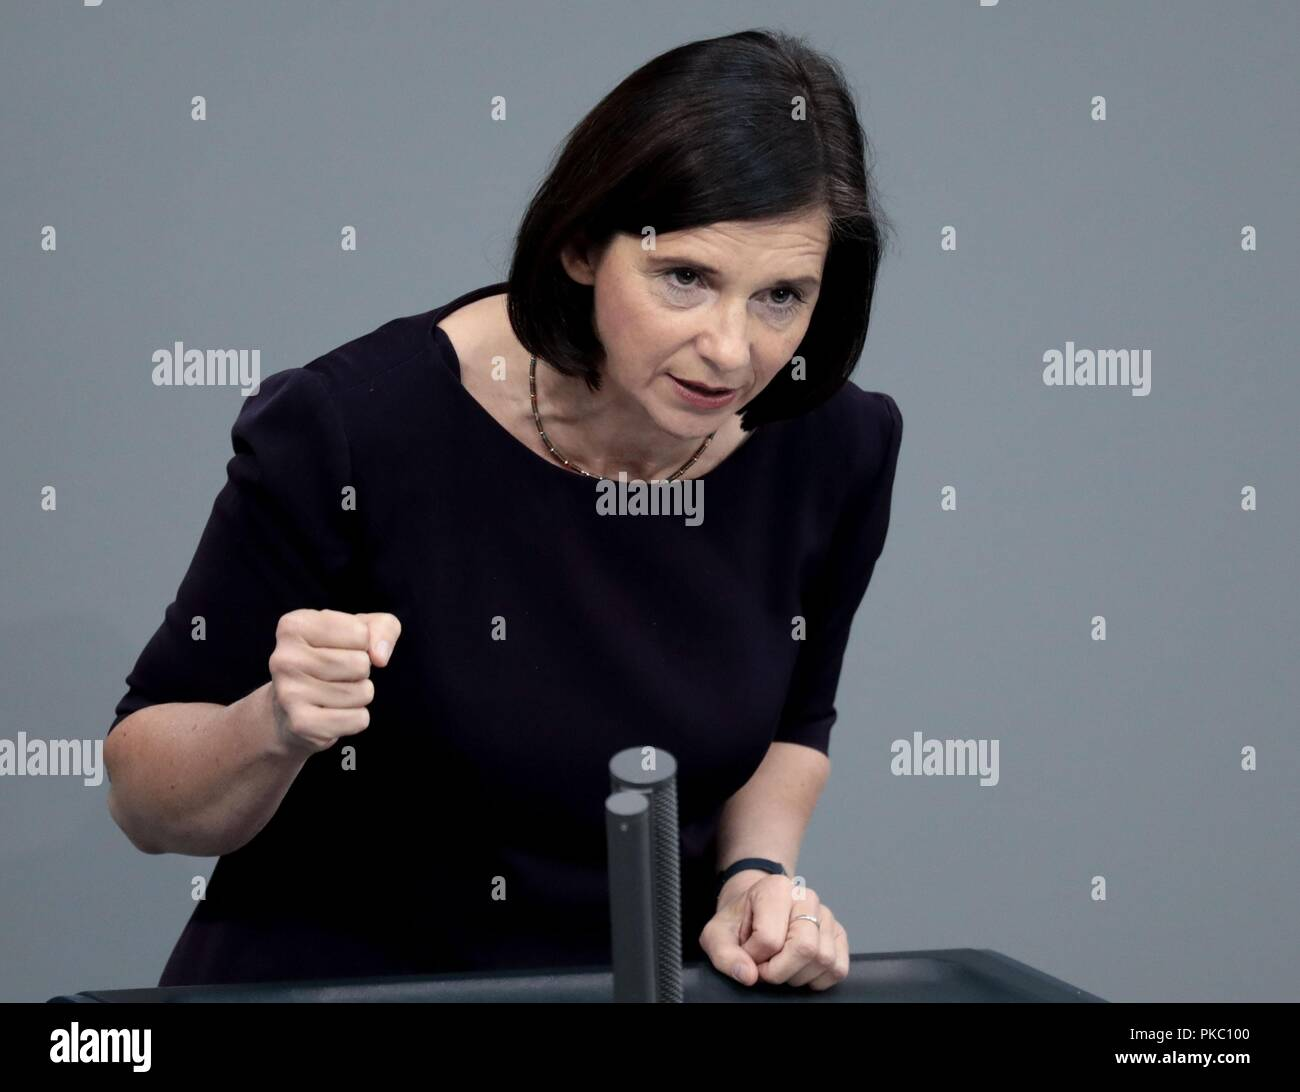 Berlin, Germany. 12th Sep, 2018. Katrin Göring-Eckardt, parliamentary group chairman of Alliance 90/The Greens, speaks at the general debate in the German Bundestag. The main topic of the 48th session of the 19th legislative period is the draft of the Federal Budget 2019 submitted by the Federal Government and the Federal Finance Plan 2018 to 2022 with the general debate on the budget of the Federal Chancellery. Credit: dpa picture alliance/Alamy Live News - Stock Image